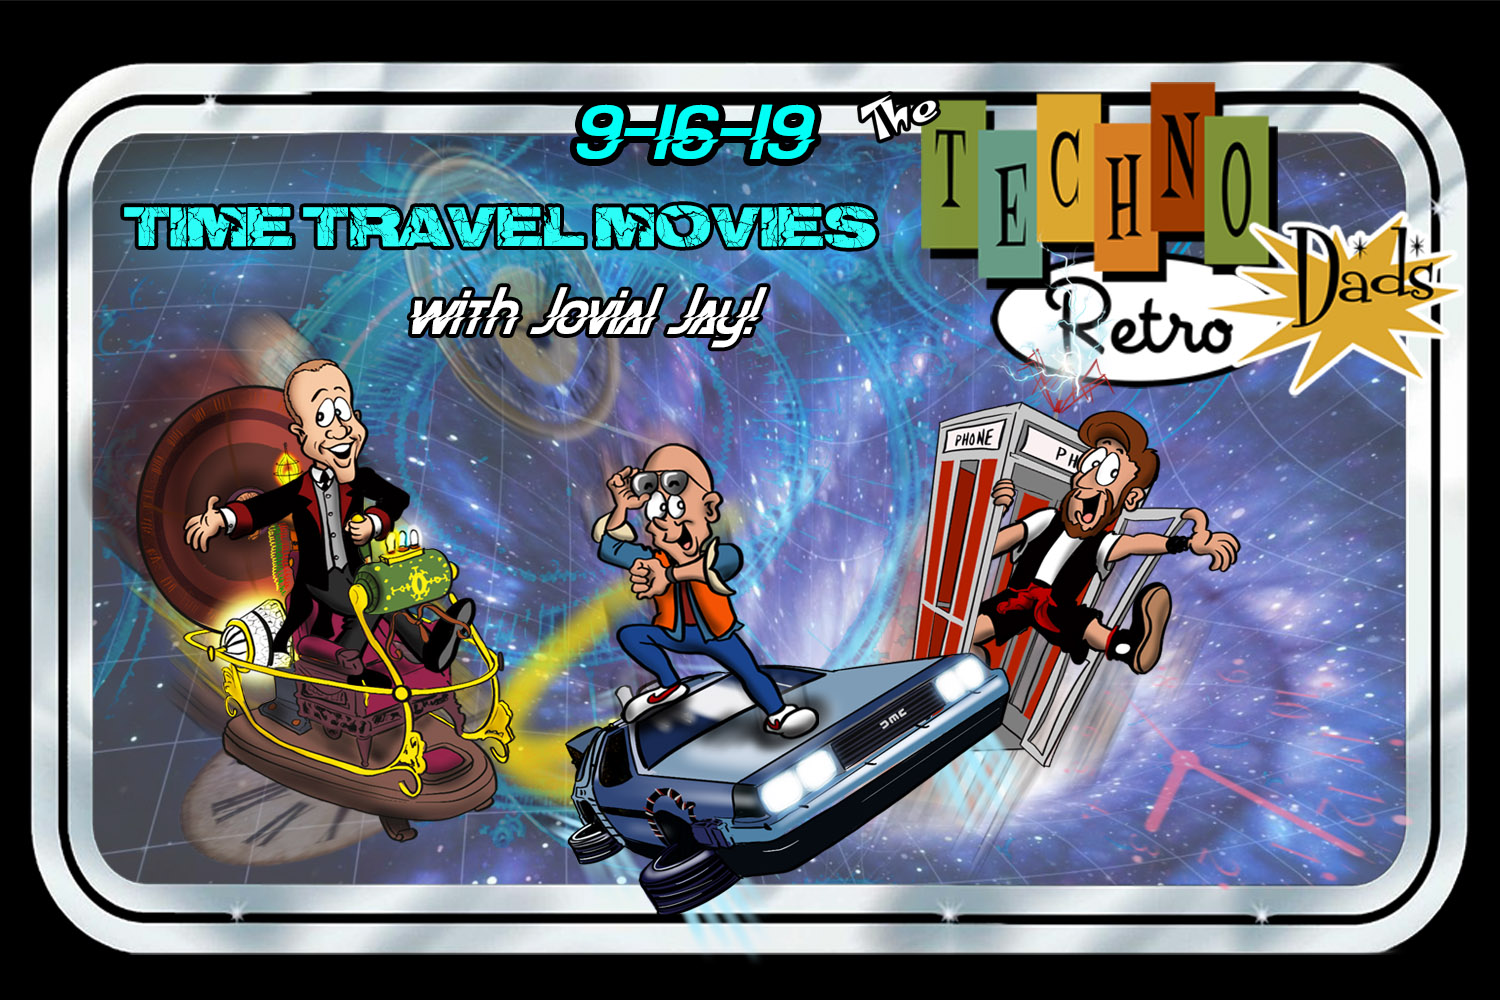 TechnoRetro Dads Time Travel with Jovial Jay